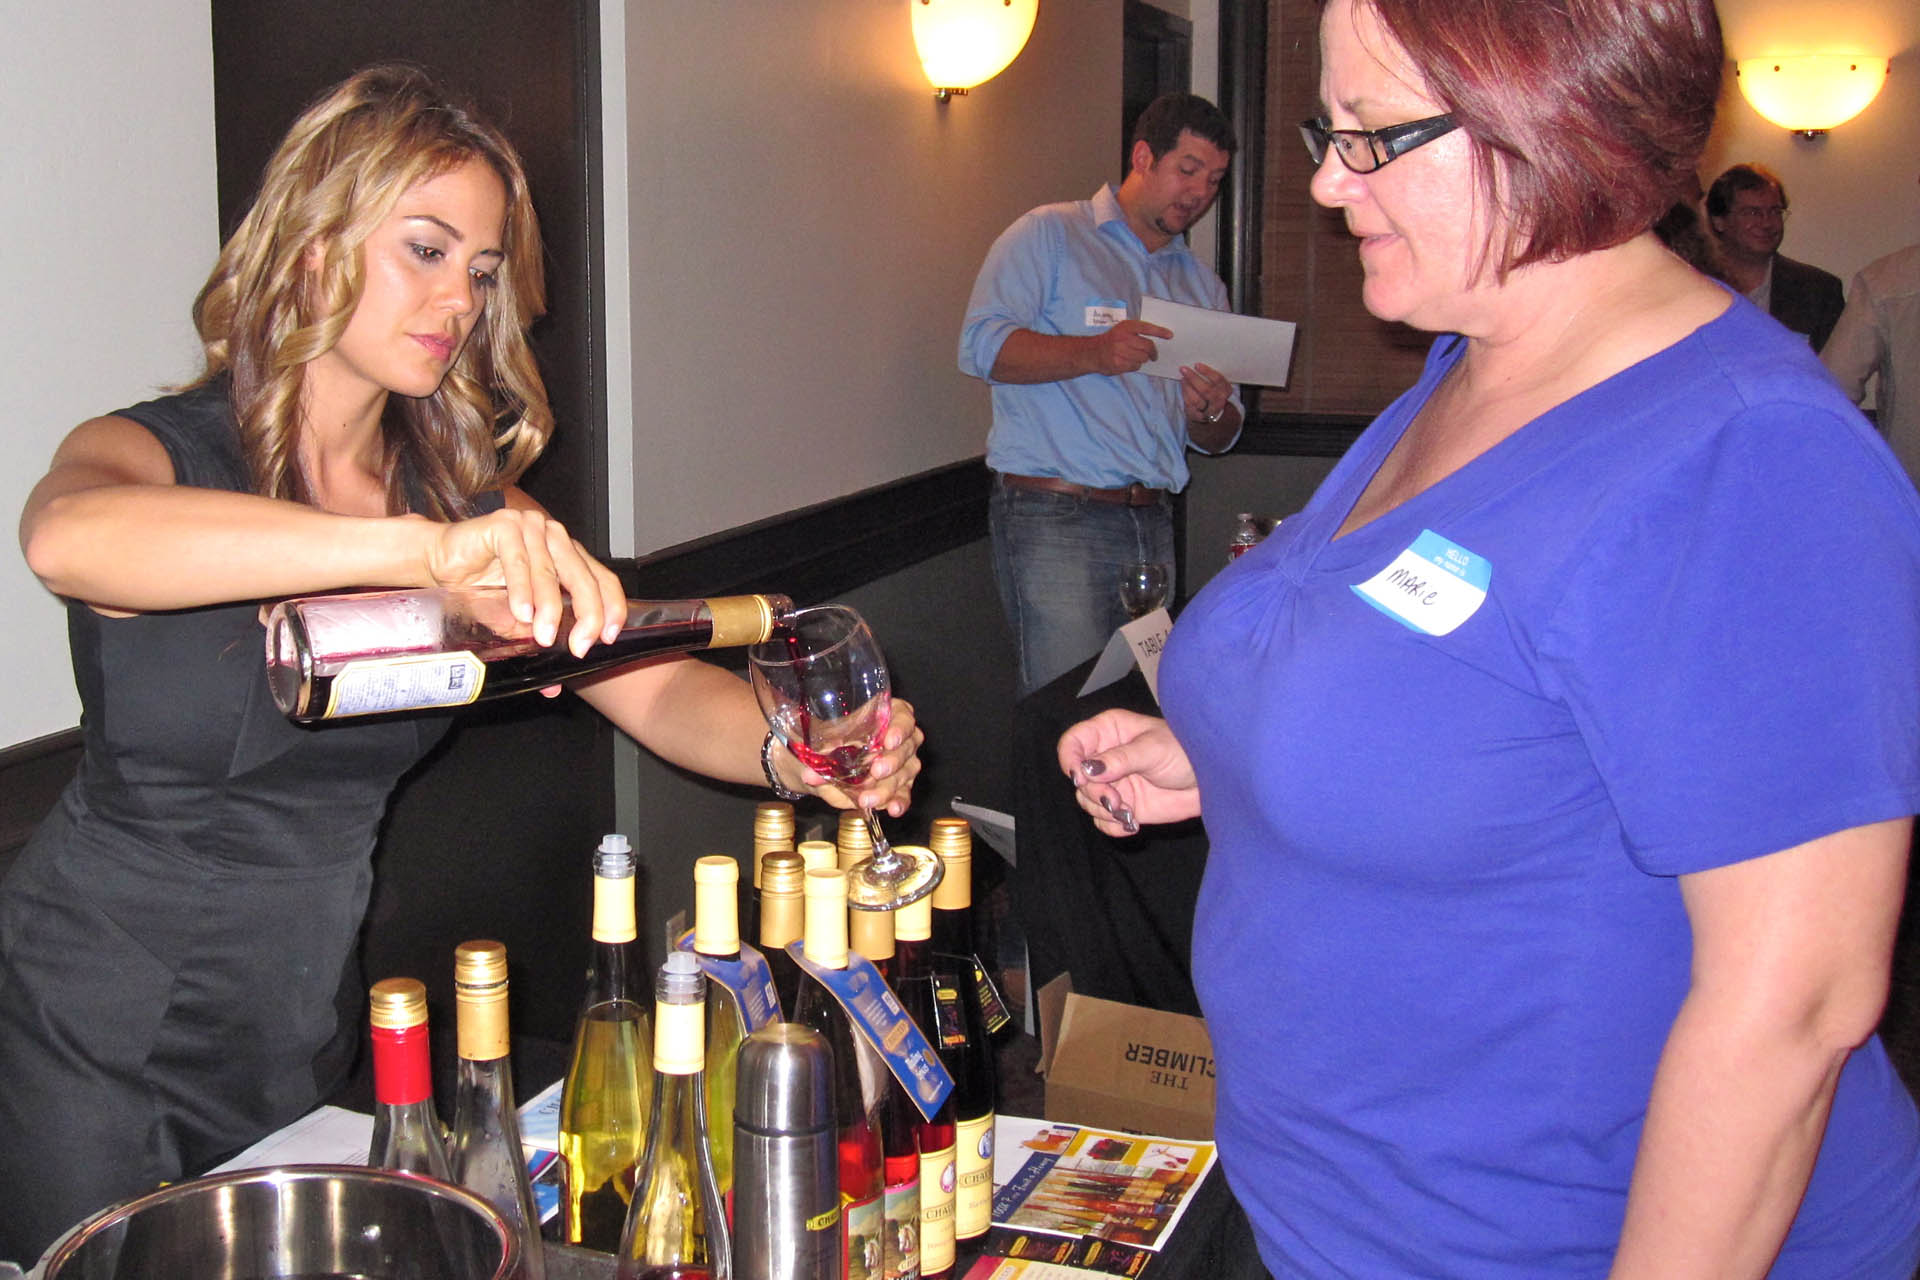 mirus-promotions-services-event-staff_0005_bargetto-wines-chaucers-cellars-phoenix-jpg